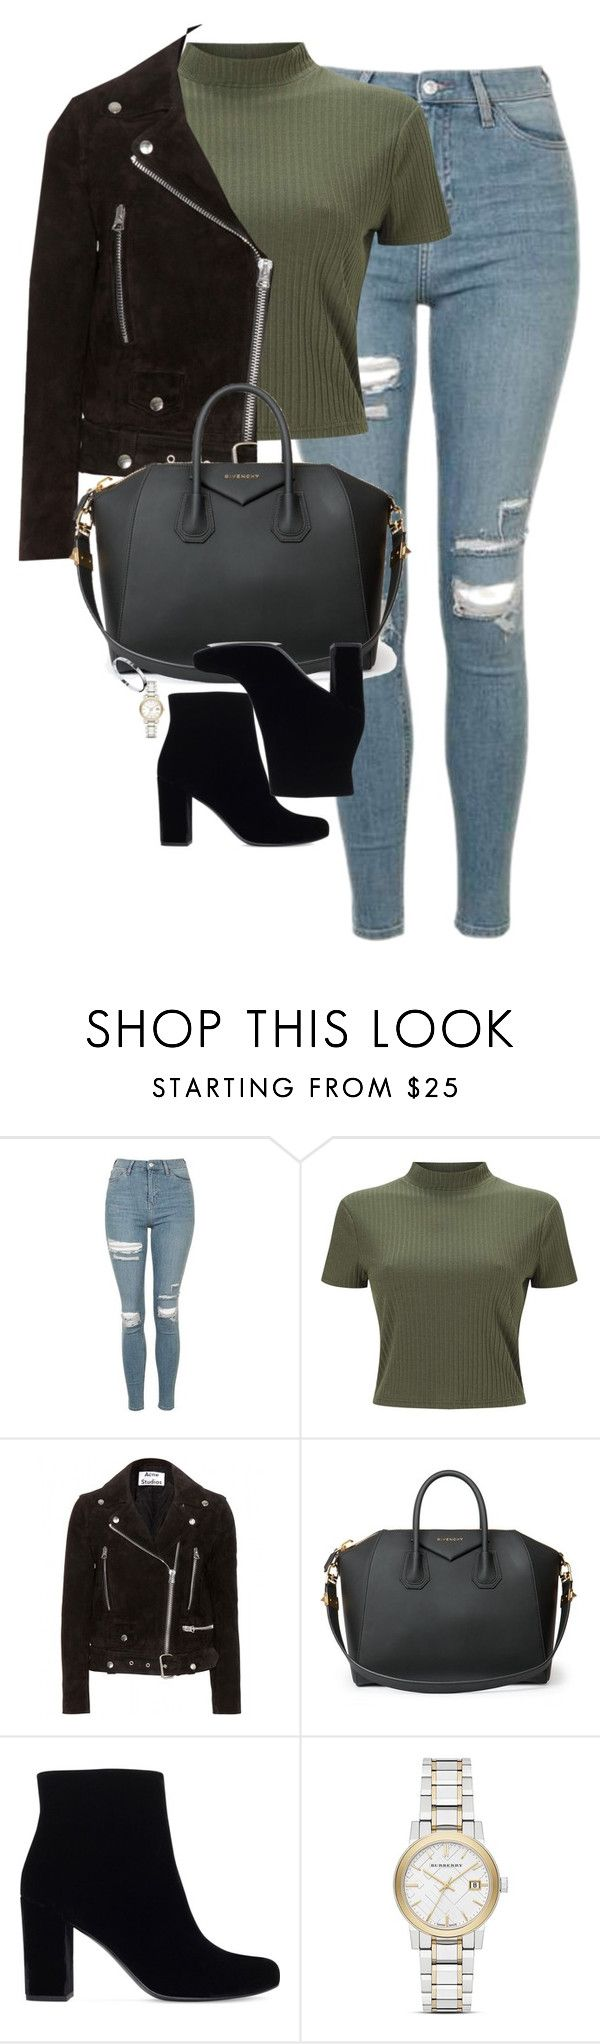 """""""Untitled #1211"""" by lovetaytay ❤ liked on Polyvore featuring Topshop, Miss Selfridge, Acne Studios, Givenchy, Yves Saint Laurent, Burberry and Cartier"""